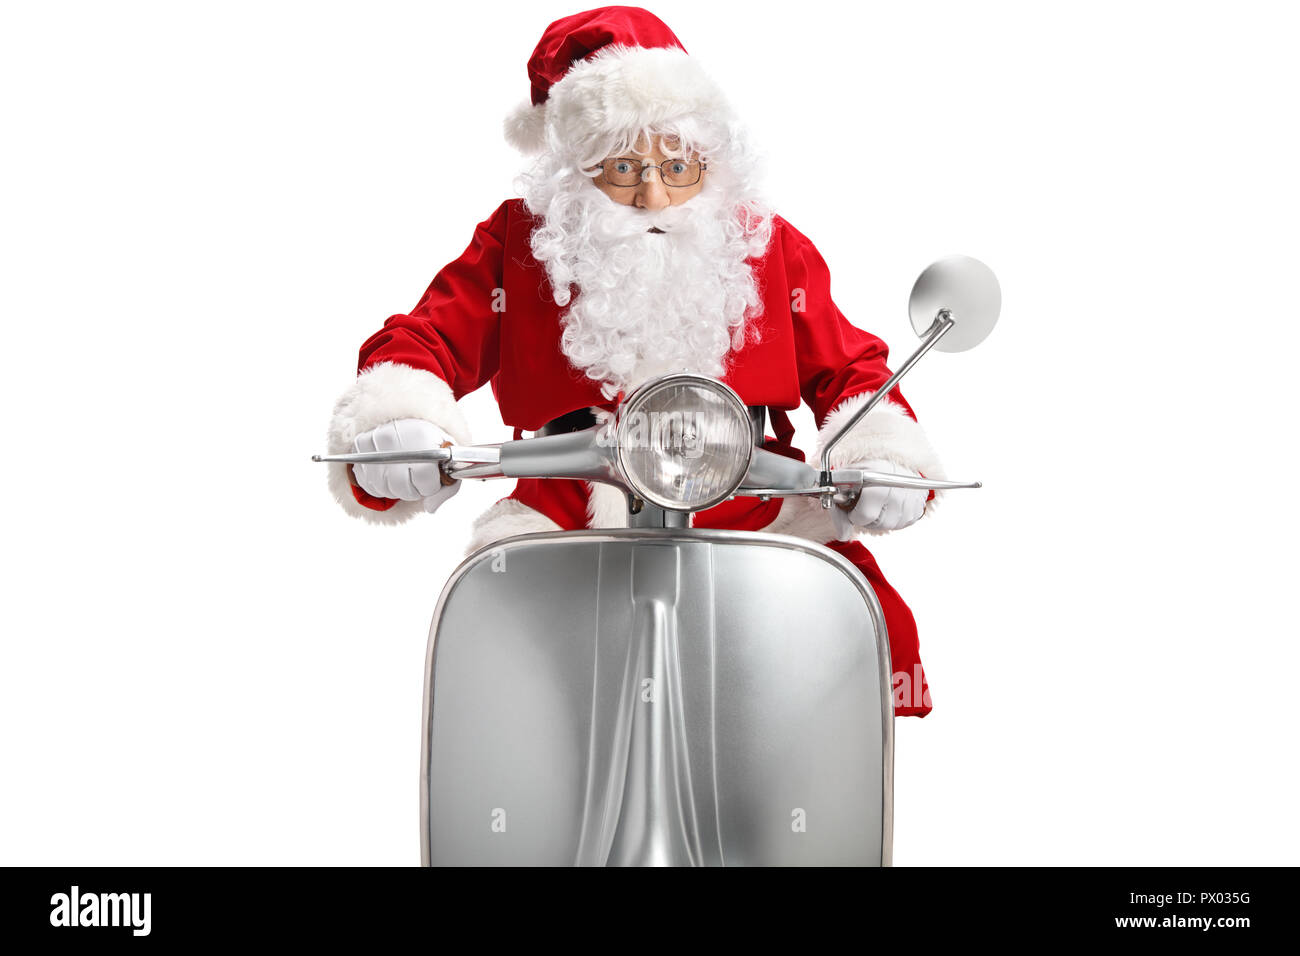 Santa Claus on a vintage scooter isolated on white background - Stock Image